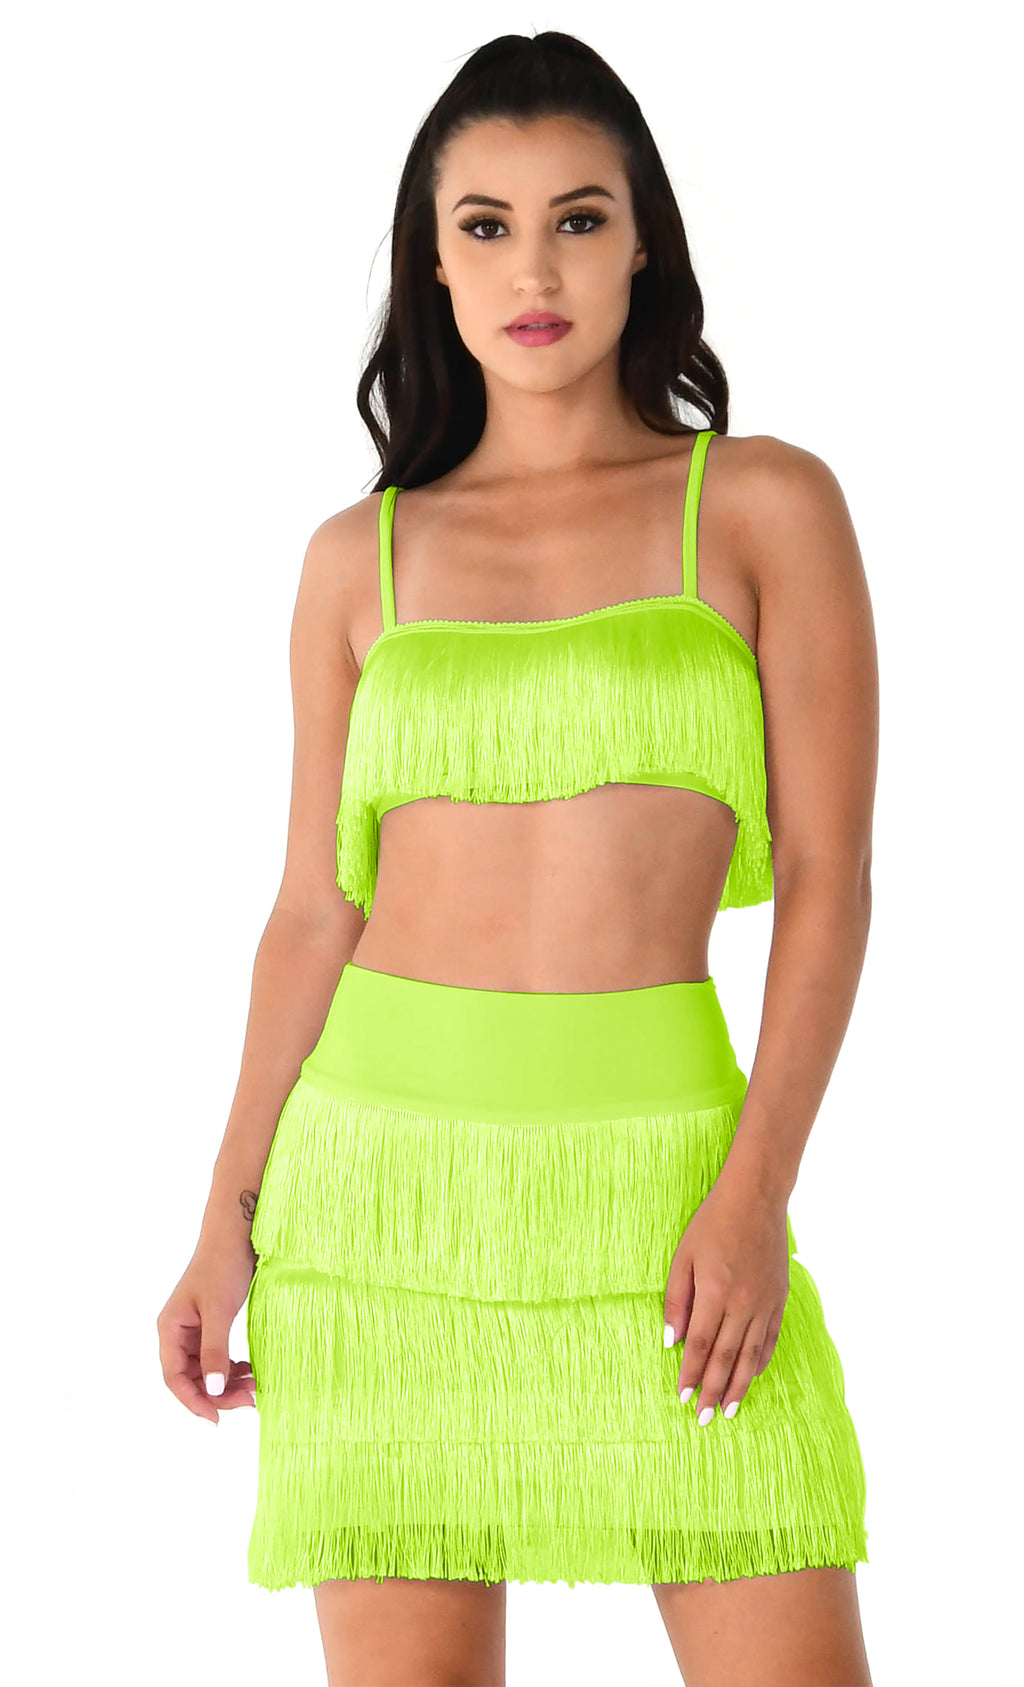 Santiago Sweetheart Neon Green Sleeveless Spaghetti Strap Fringe Crop Top Mini Short Two Piece Dress